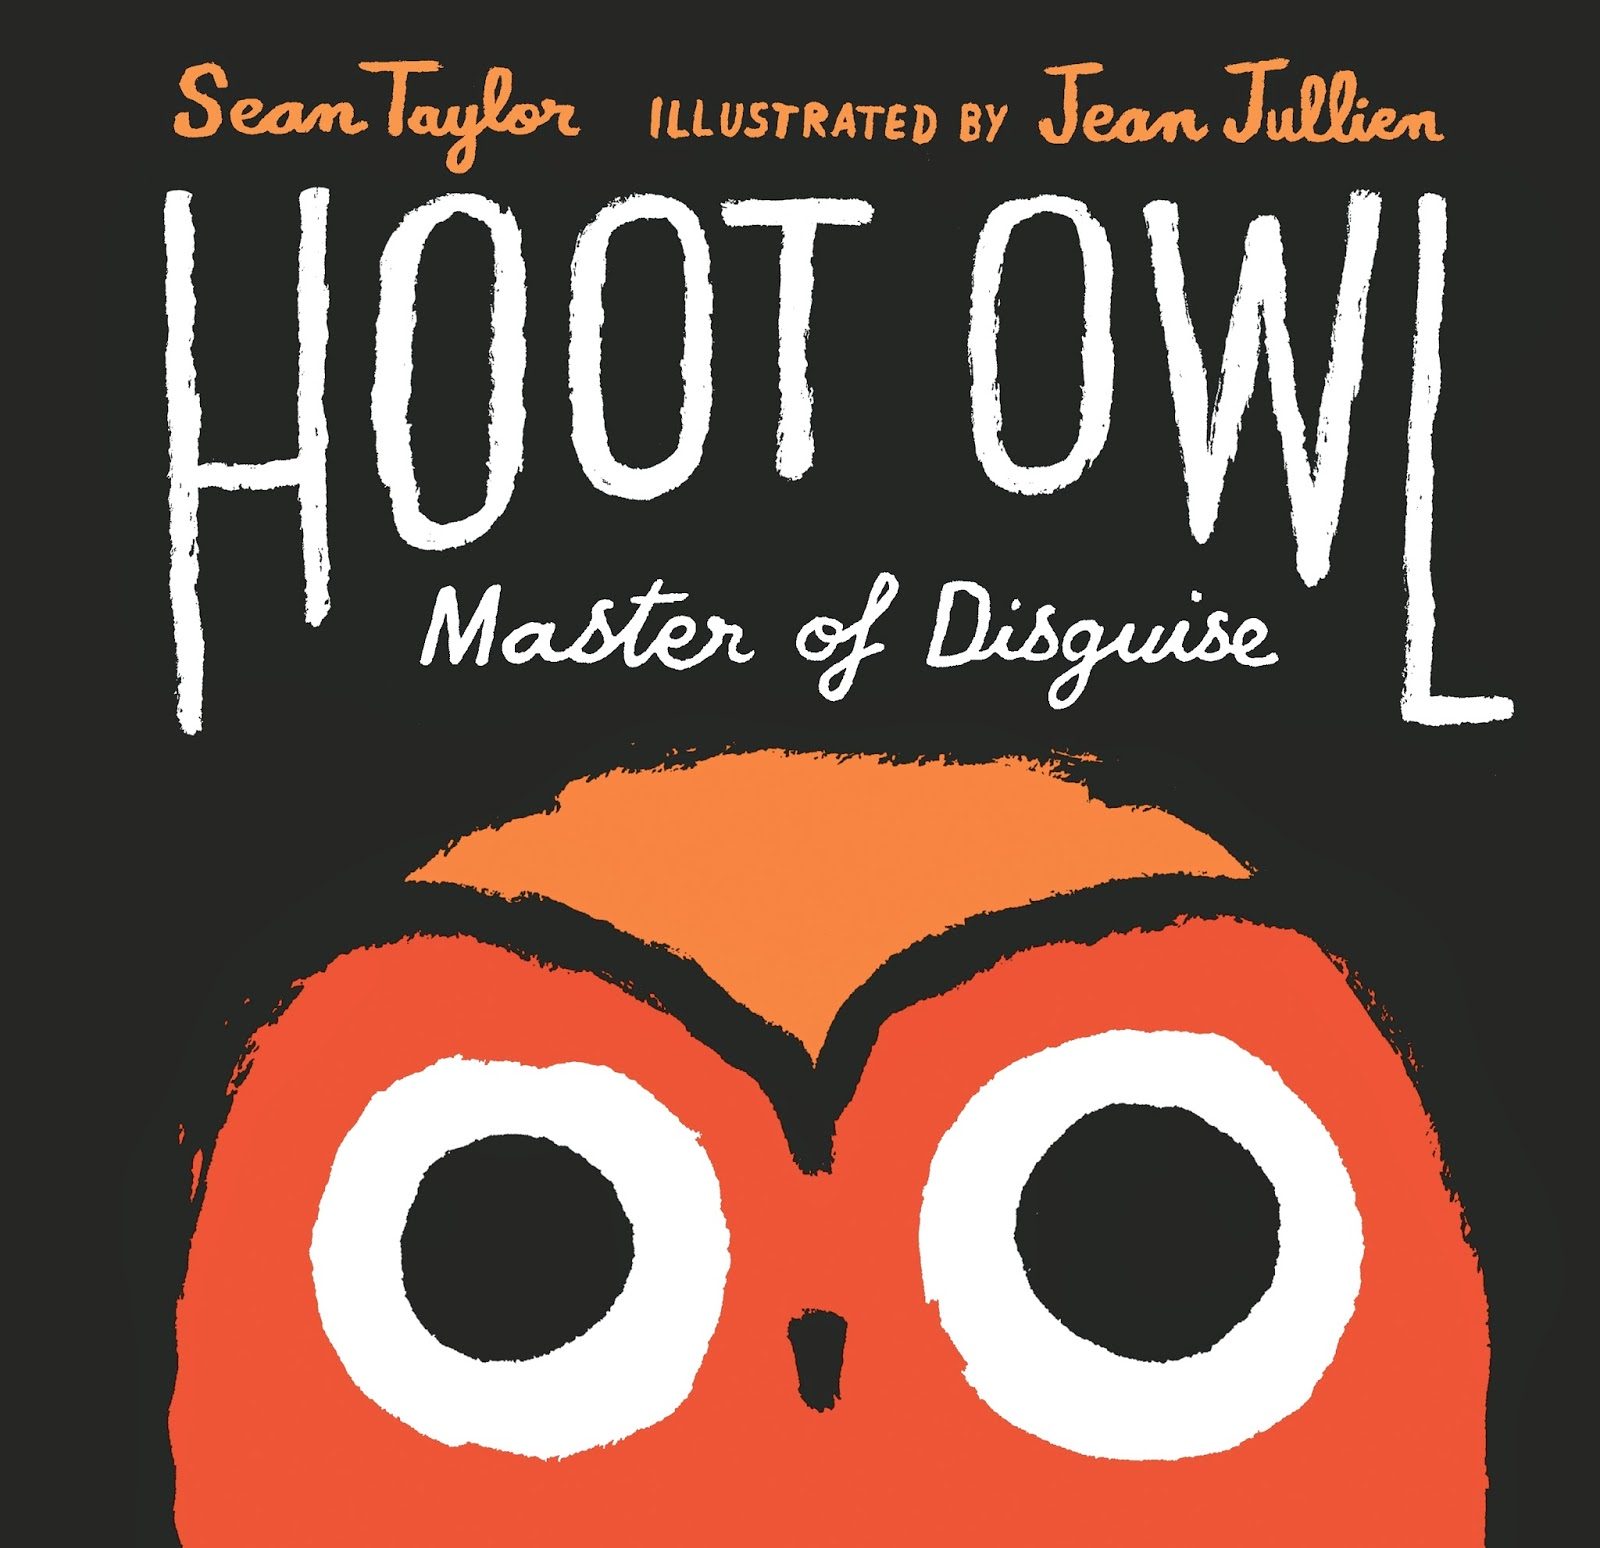 Book lounge search results hoot owl master of disguise by sean taylor illustrated by jean jullien fandeluxe Image collections